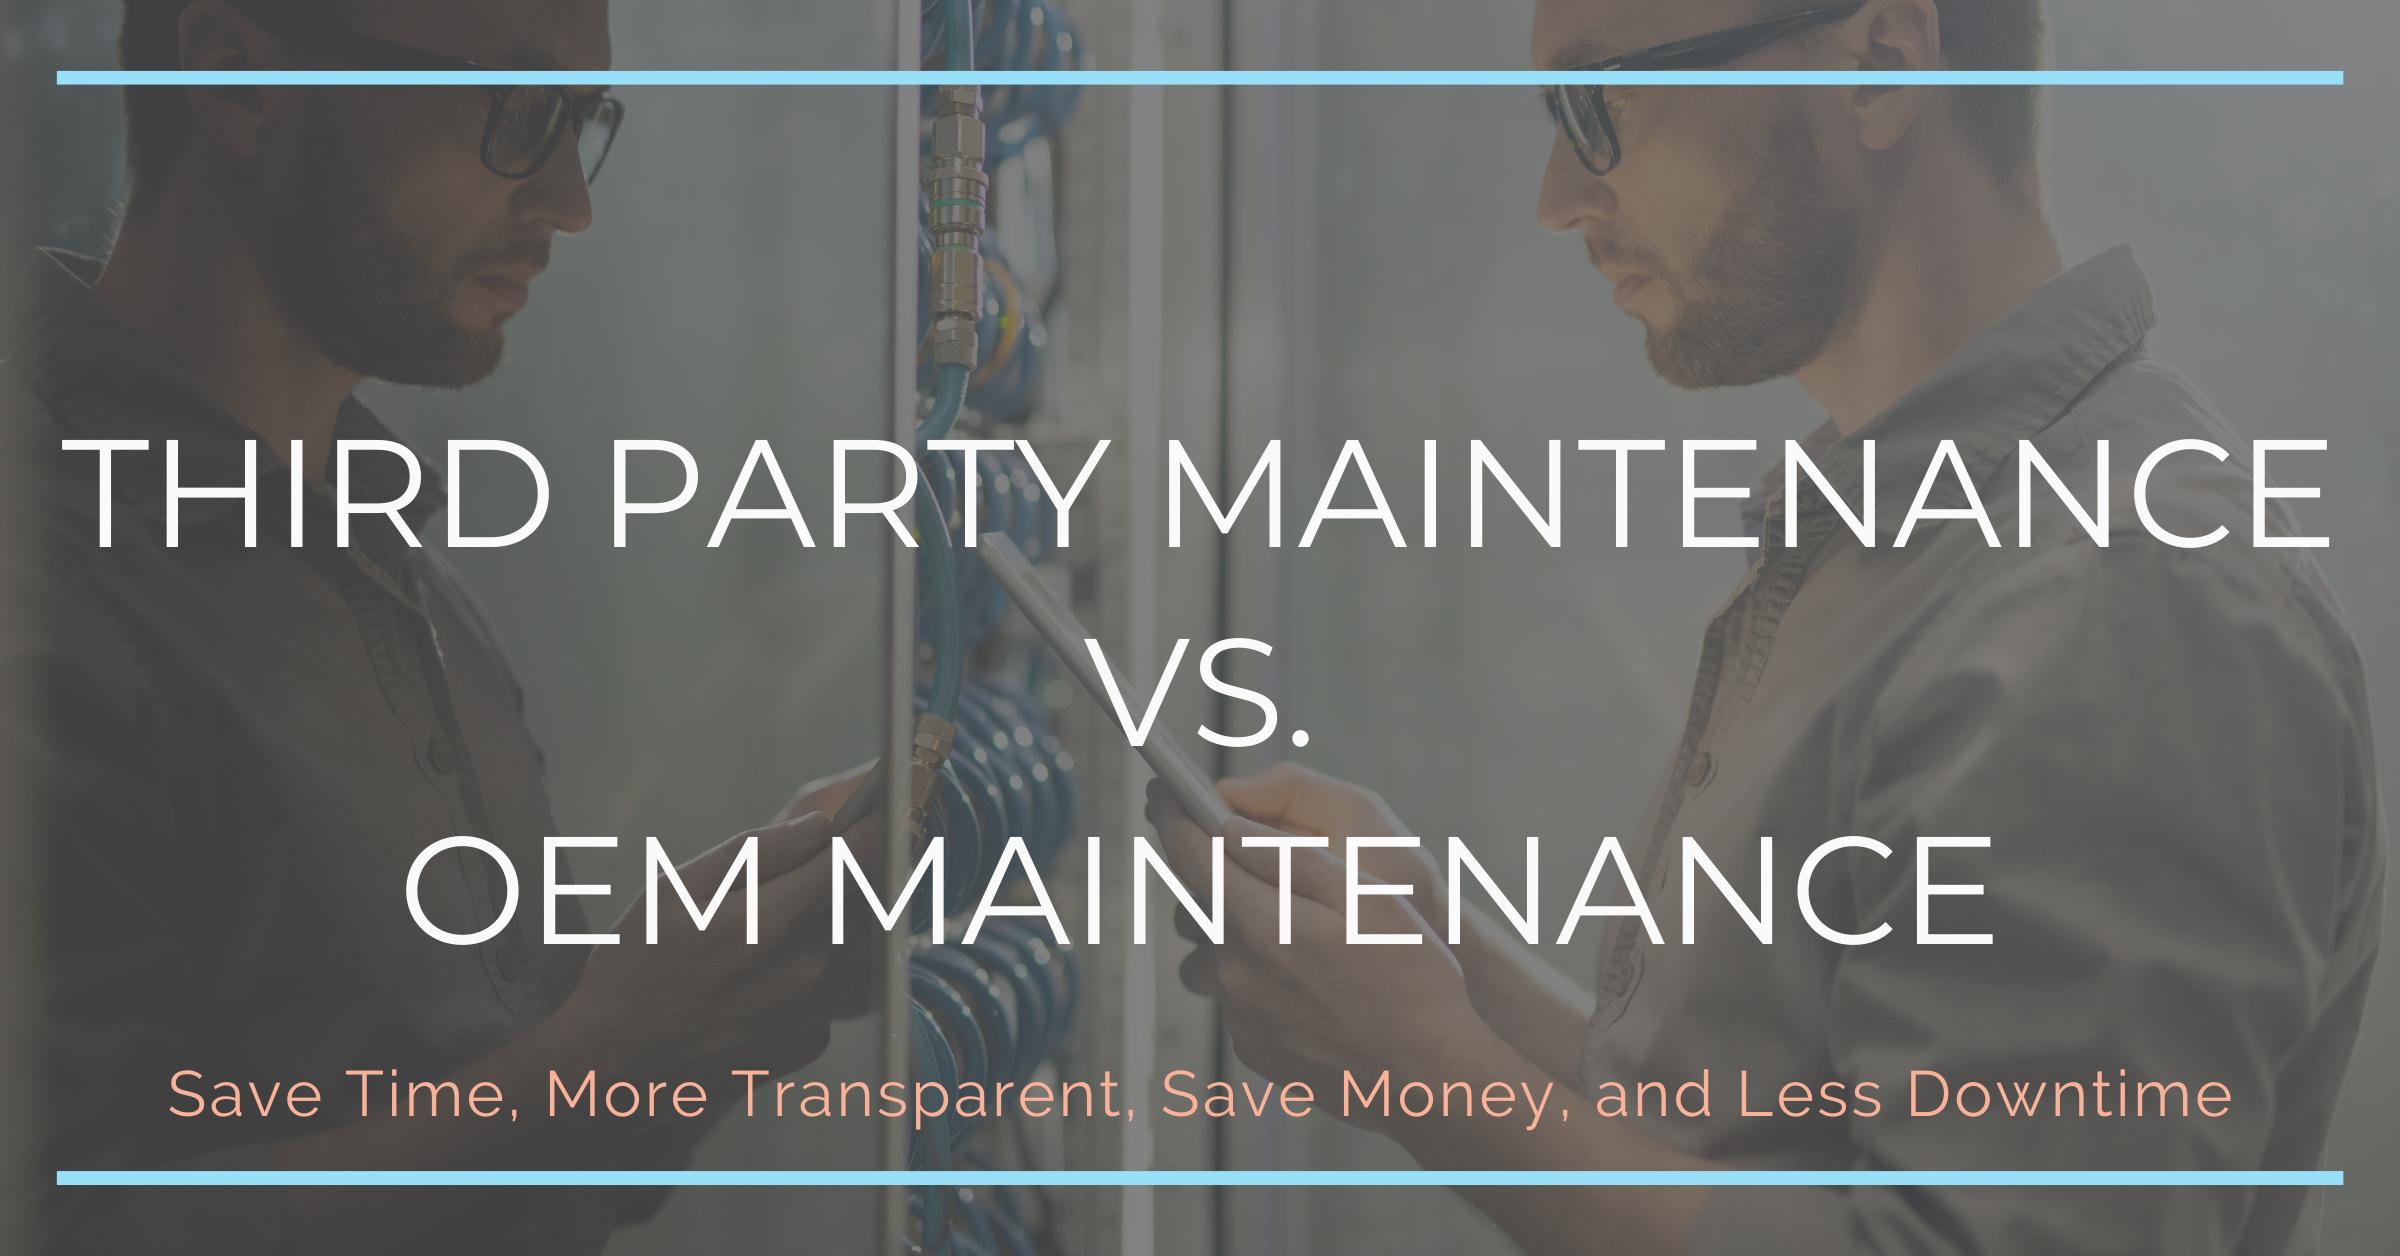 Third Party Maintenance vs. OEM Maintenance